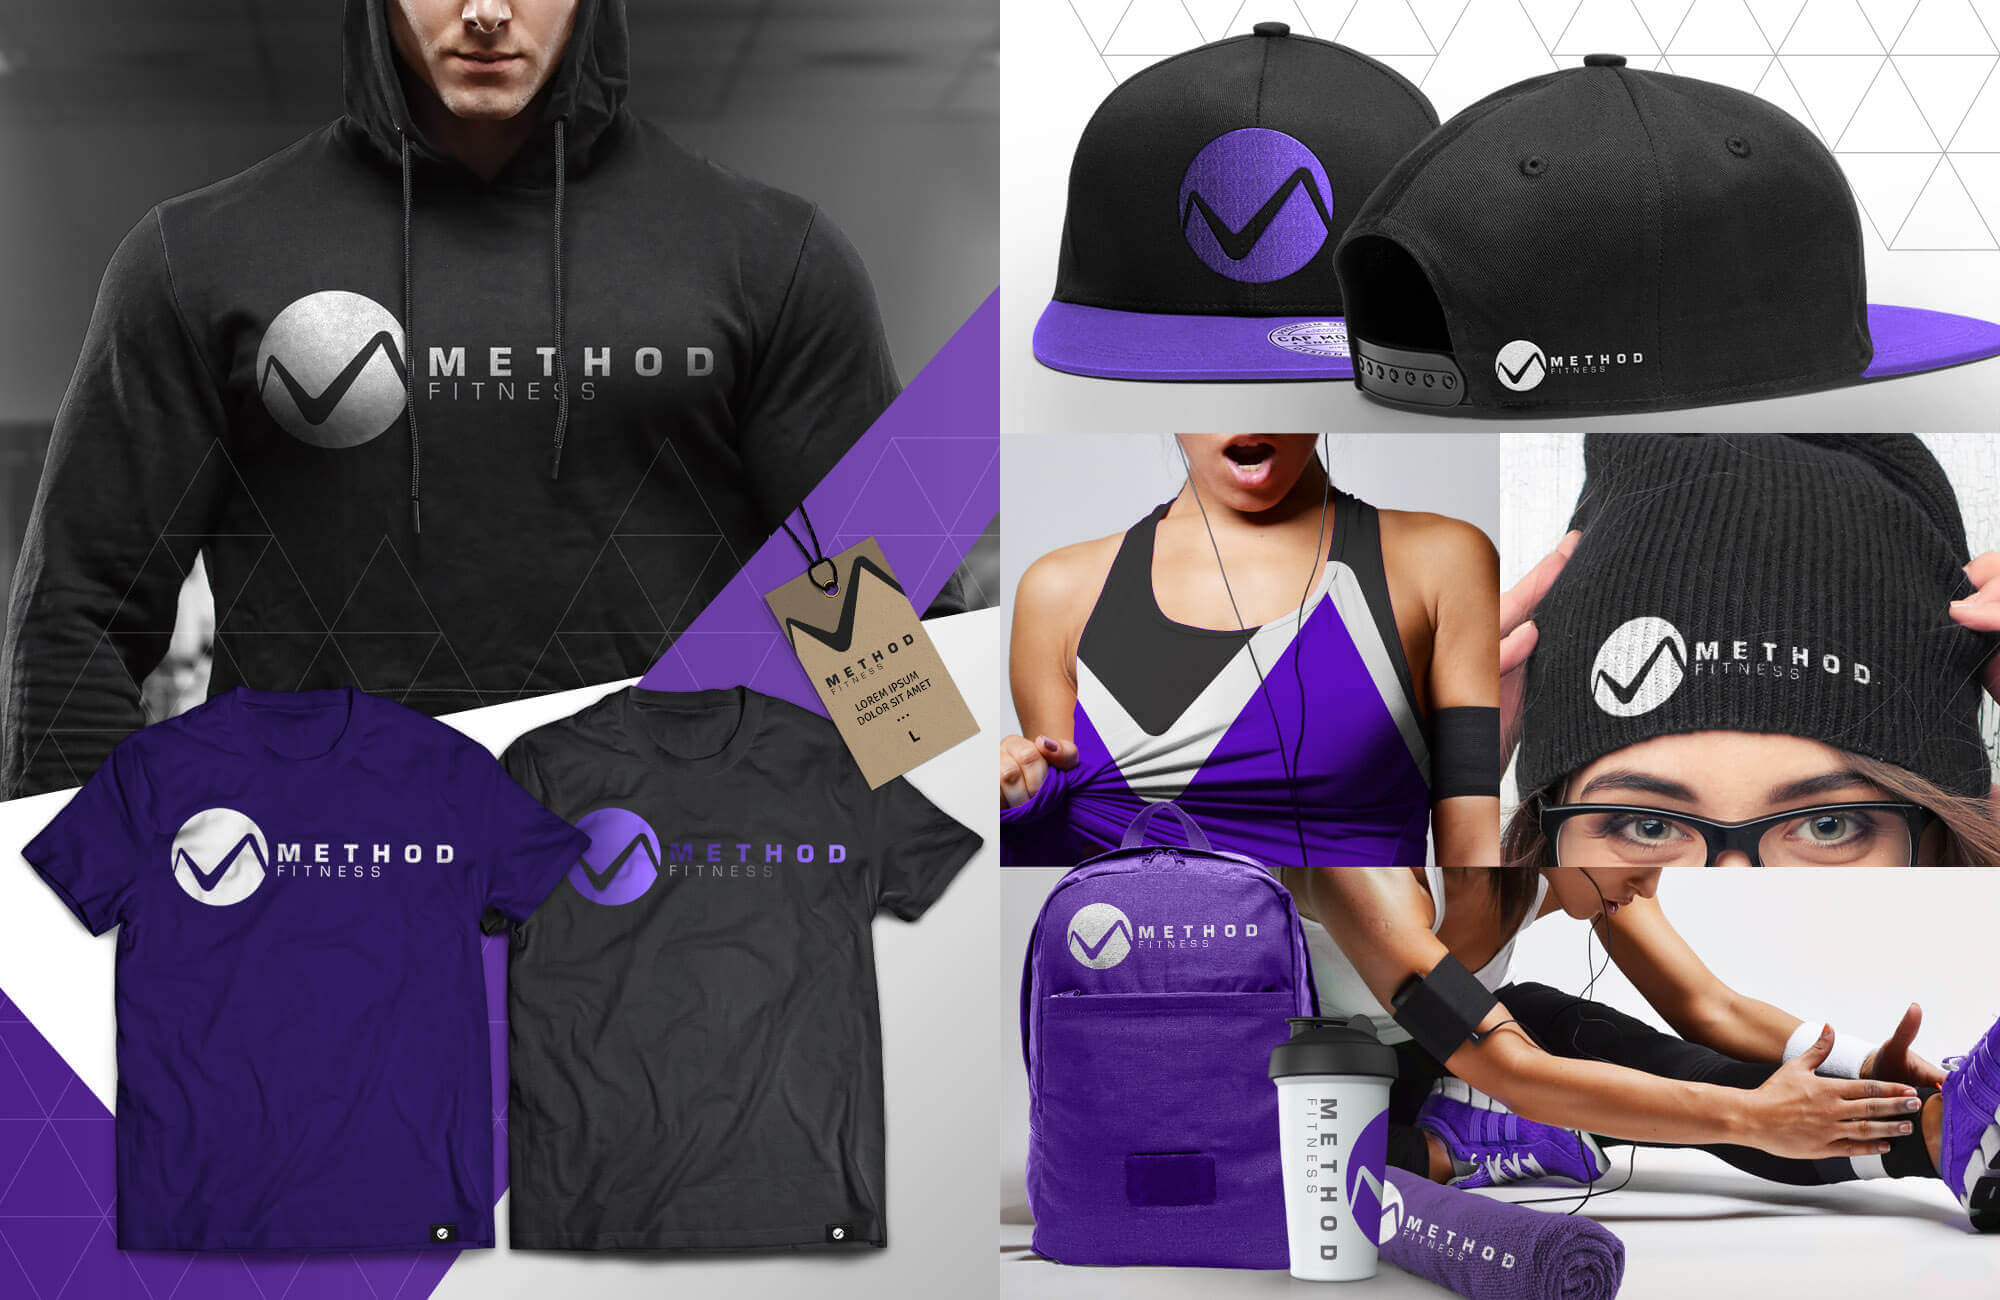 Purple Collage of Swag Pack with shirts, towels, hoodies, hats, backpacks, etc.